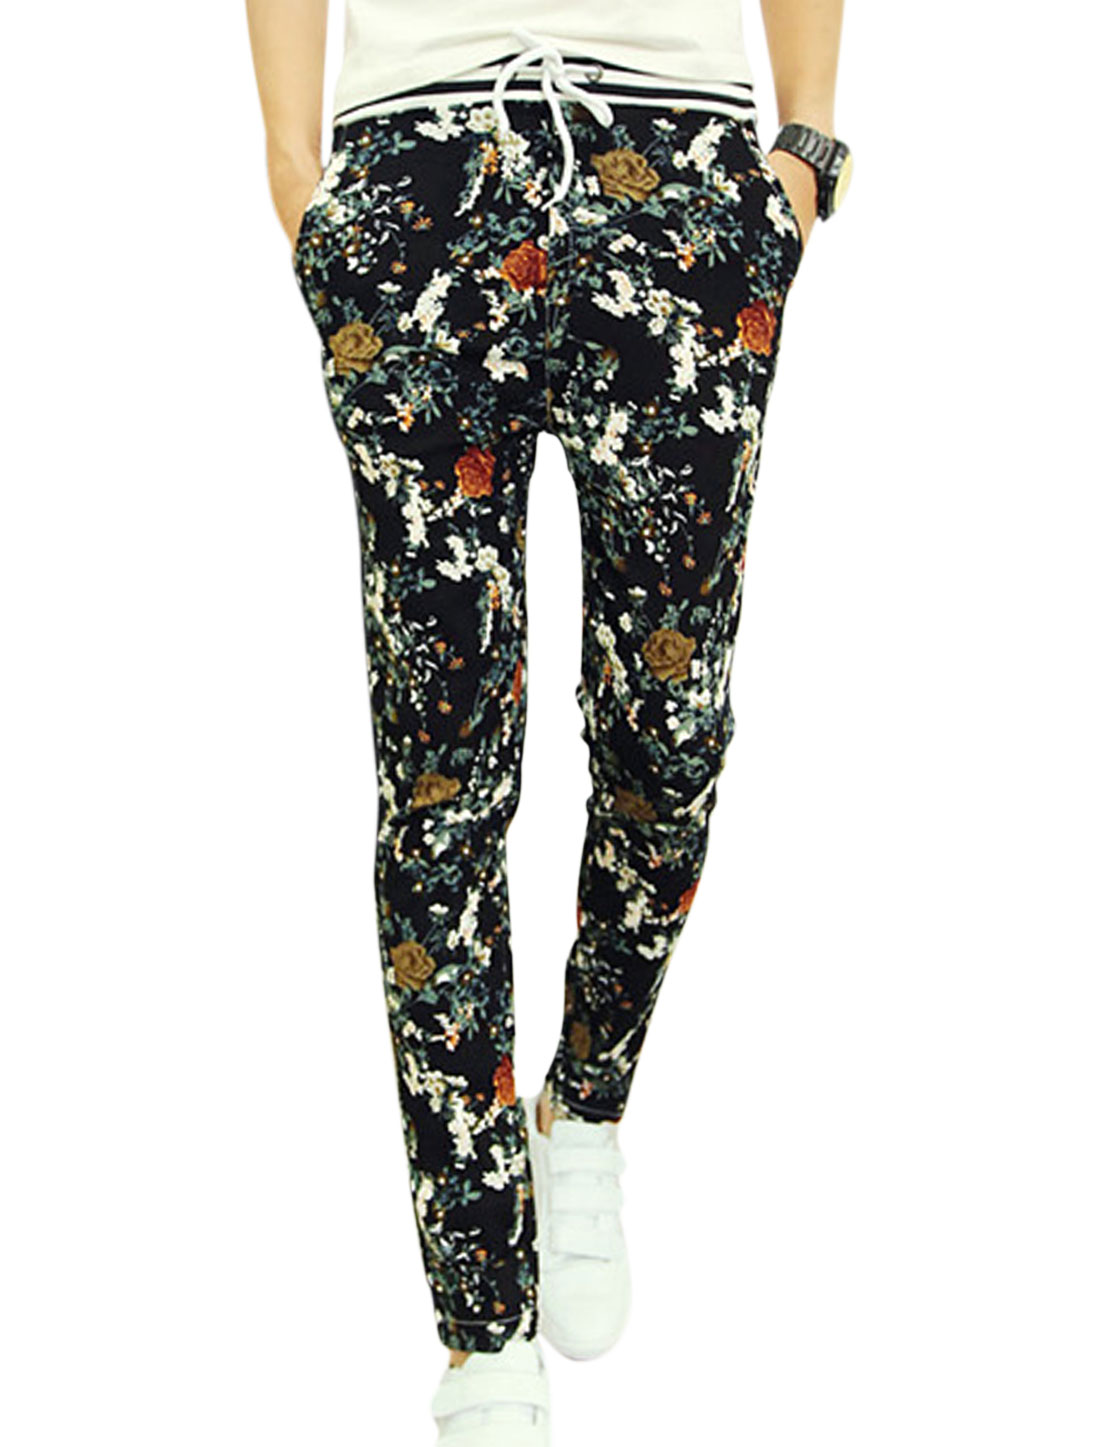 Men Contrast Waistband Mid Rise Floral Prints Newly Pants Black Multicolor W28